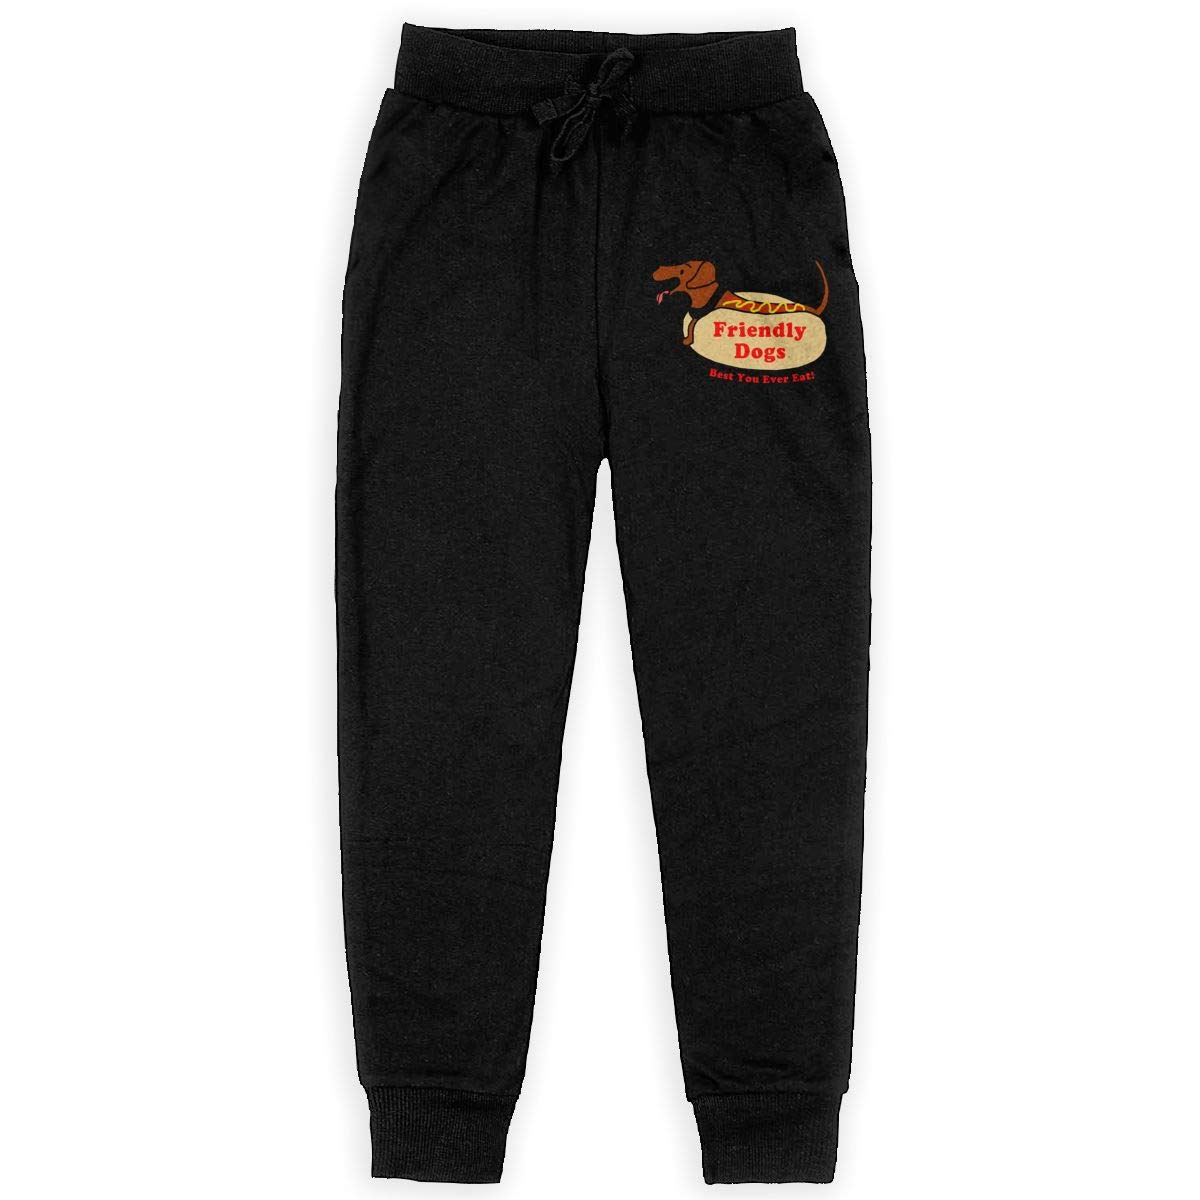 IufnNRJndfu Friendly Dogs Boys Athletic Smart Fleece Pant Youth Soft and Cozy Sweatpants